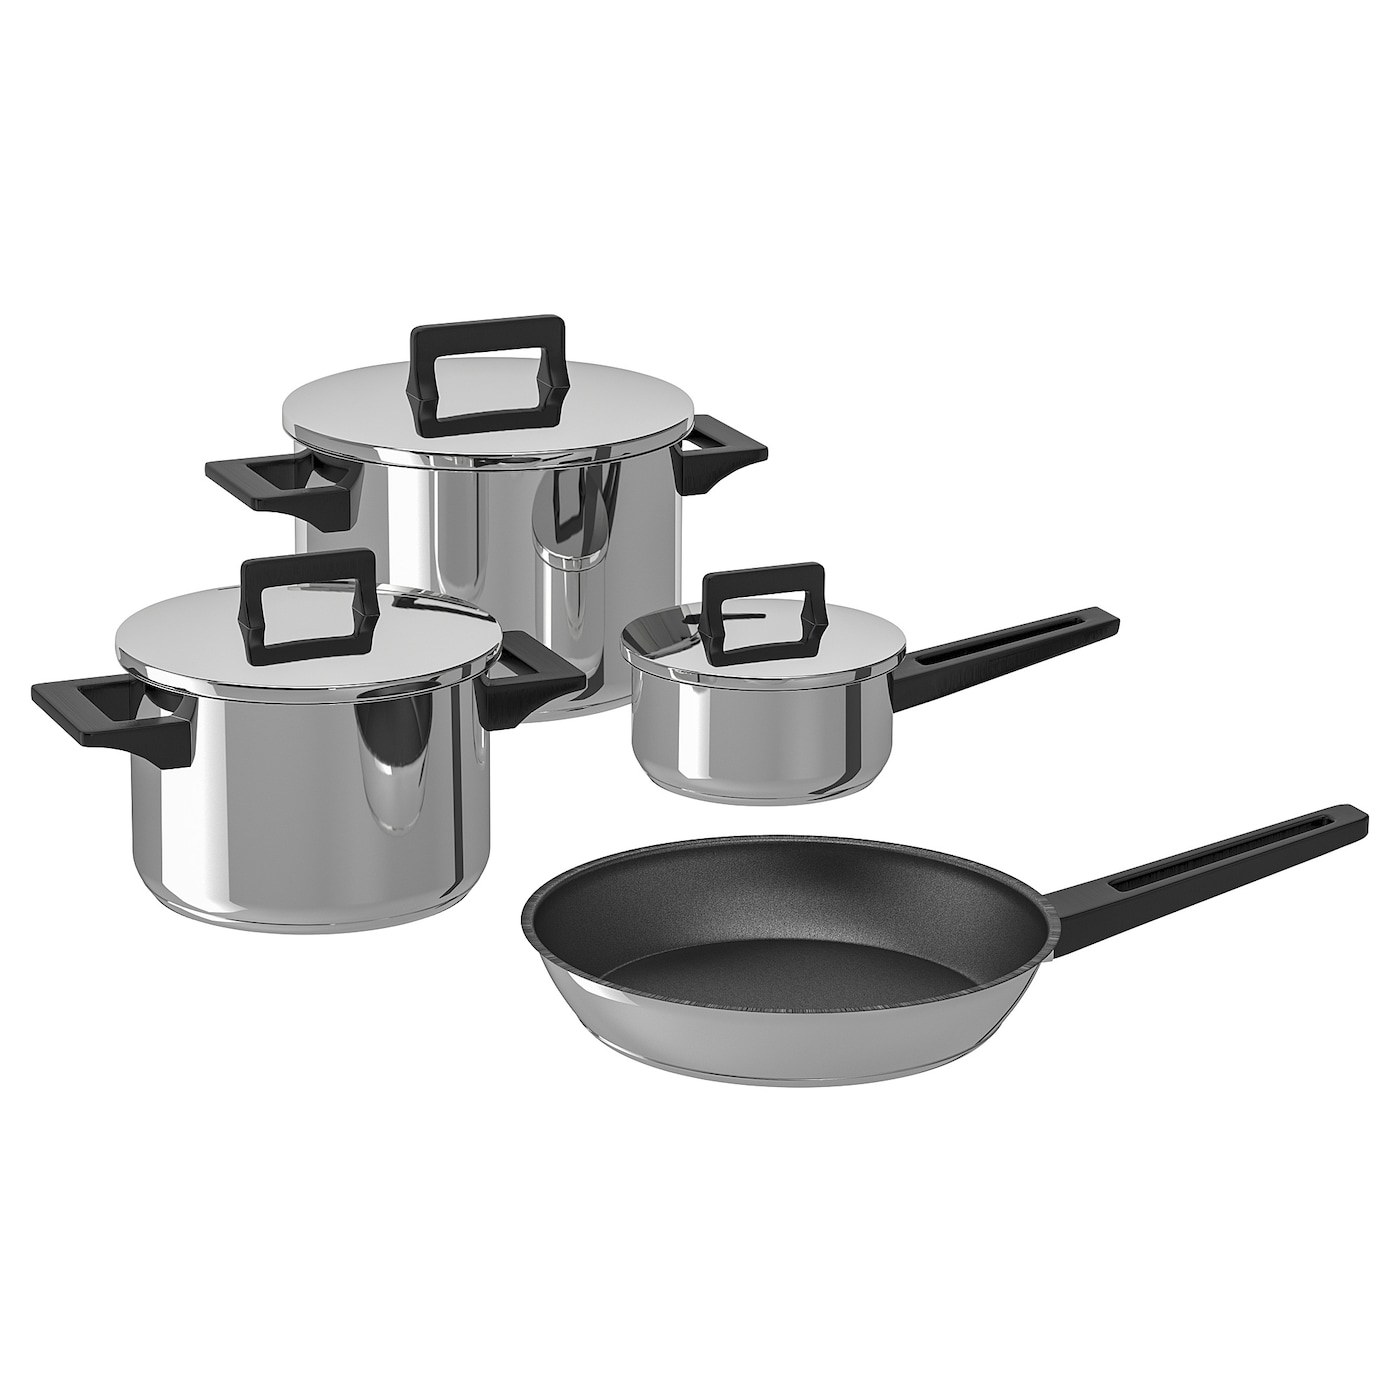 IKEA SNITSIG 7-piece cookware set Works well on all types of hobs, including induction hob.